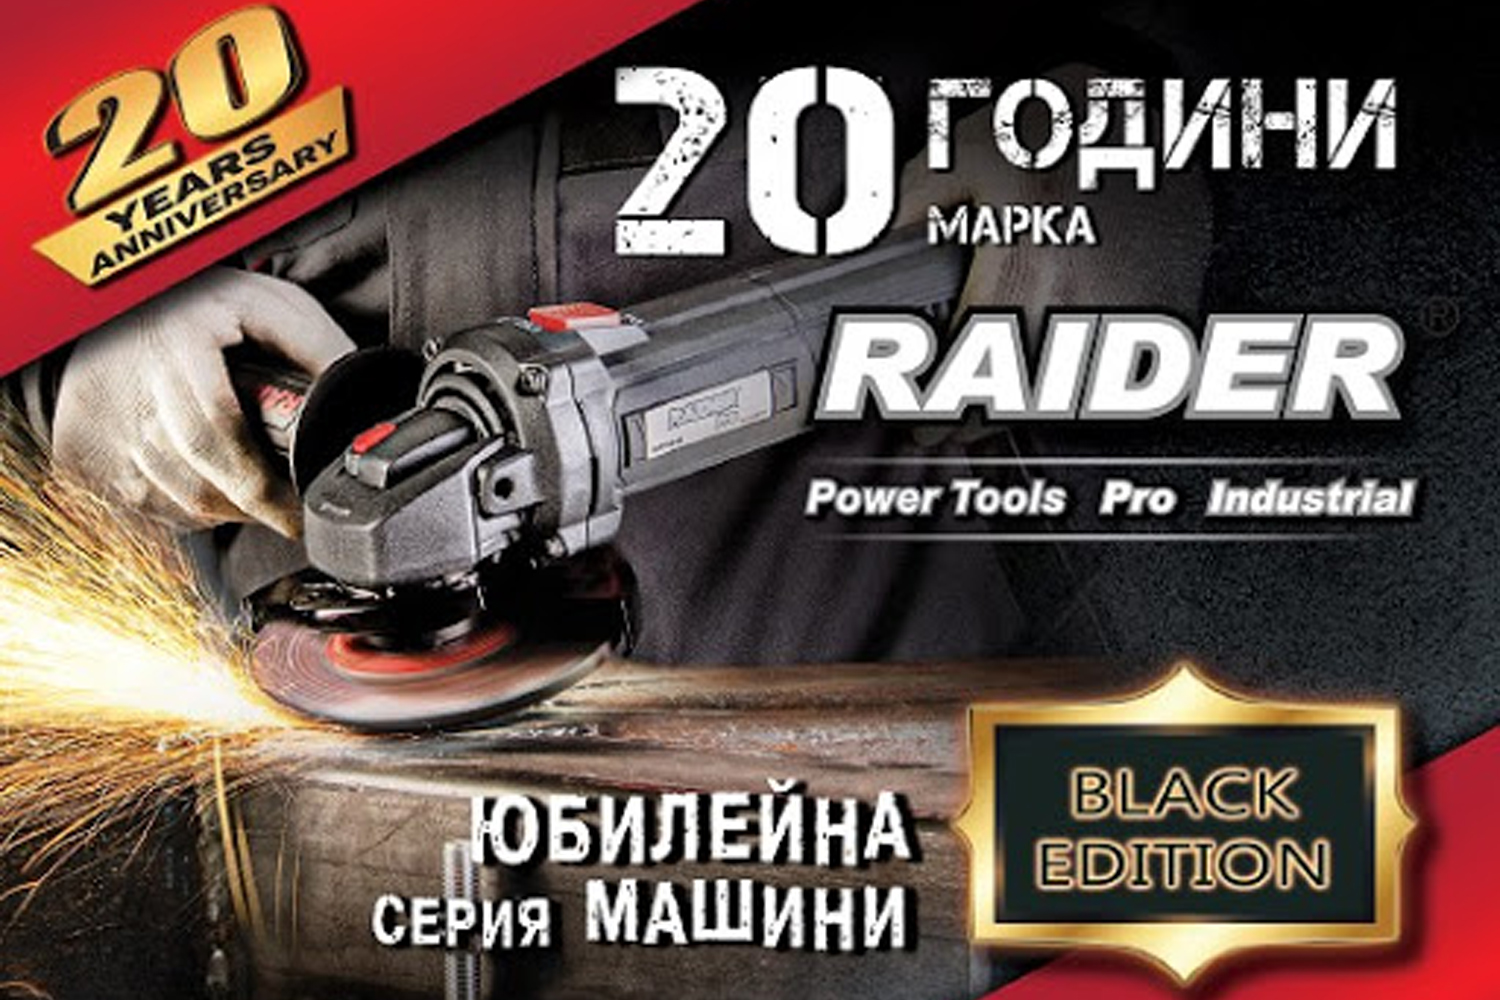 НОВА юбилейна серия електроинструменти RAIDER Pro Black Edition